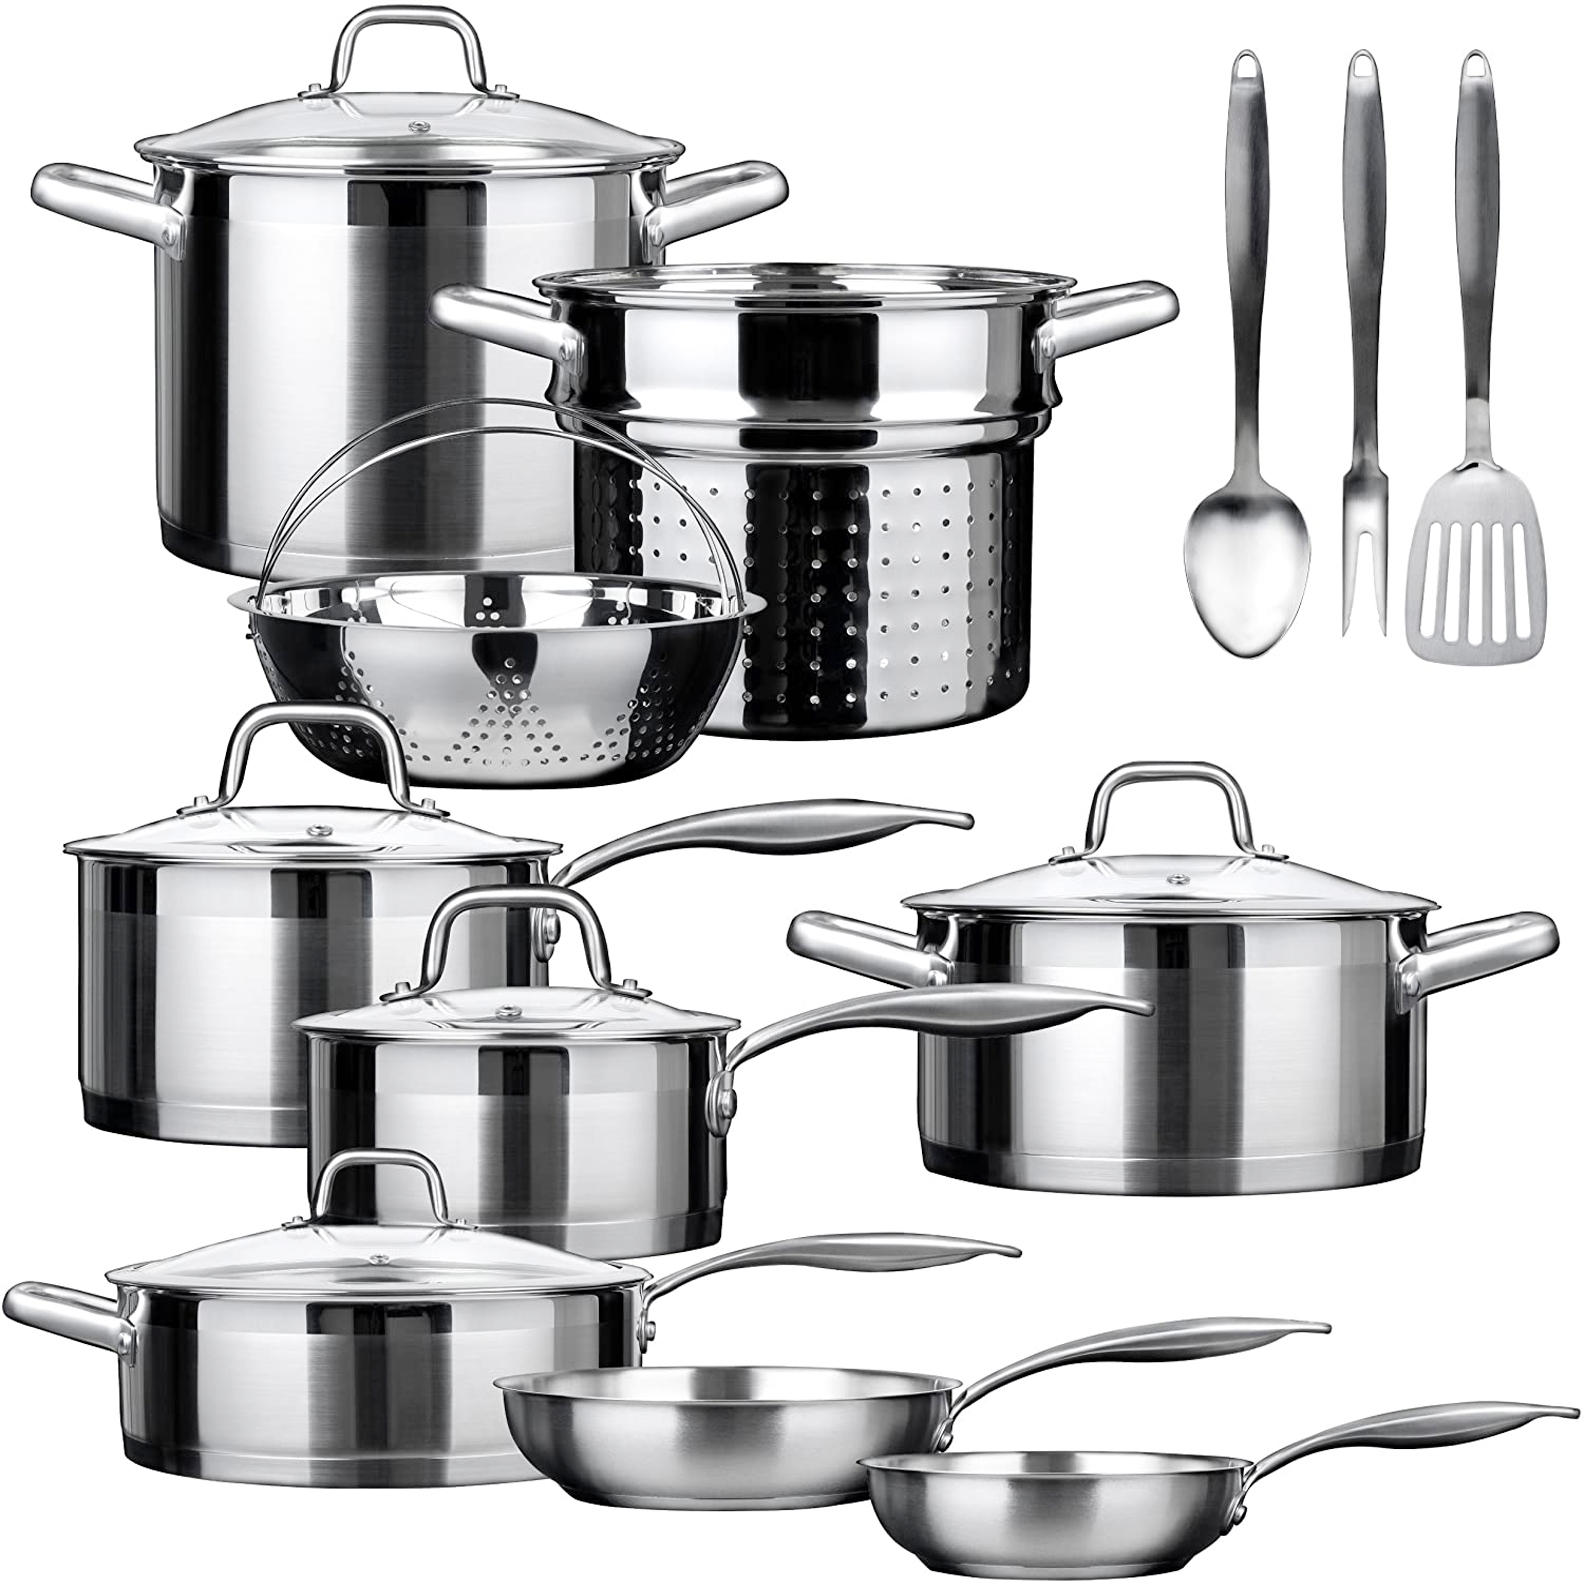 Duxtop Professional 17 Pieces Stainless Steel Induction Cookware Set,